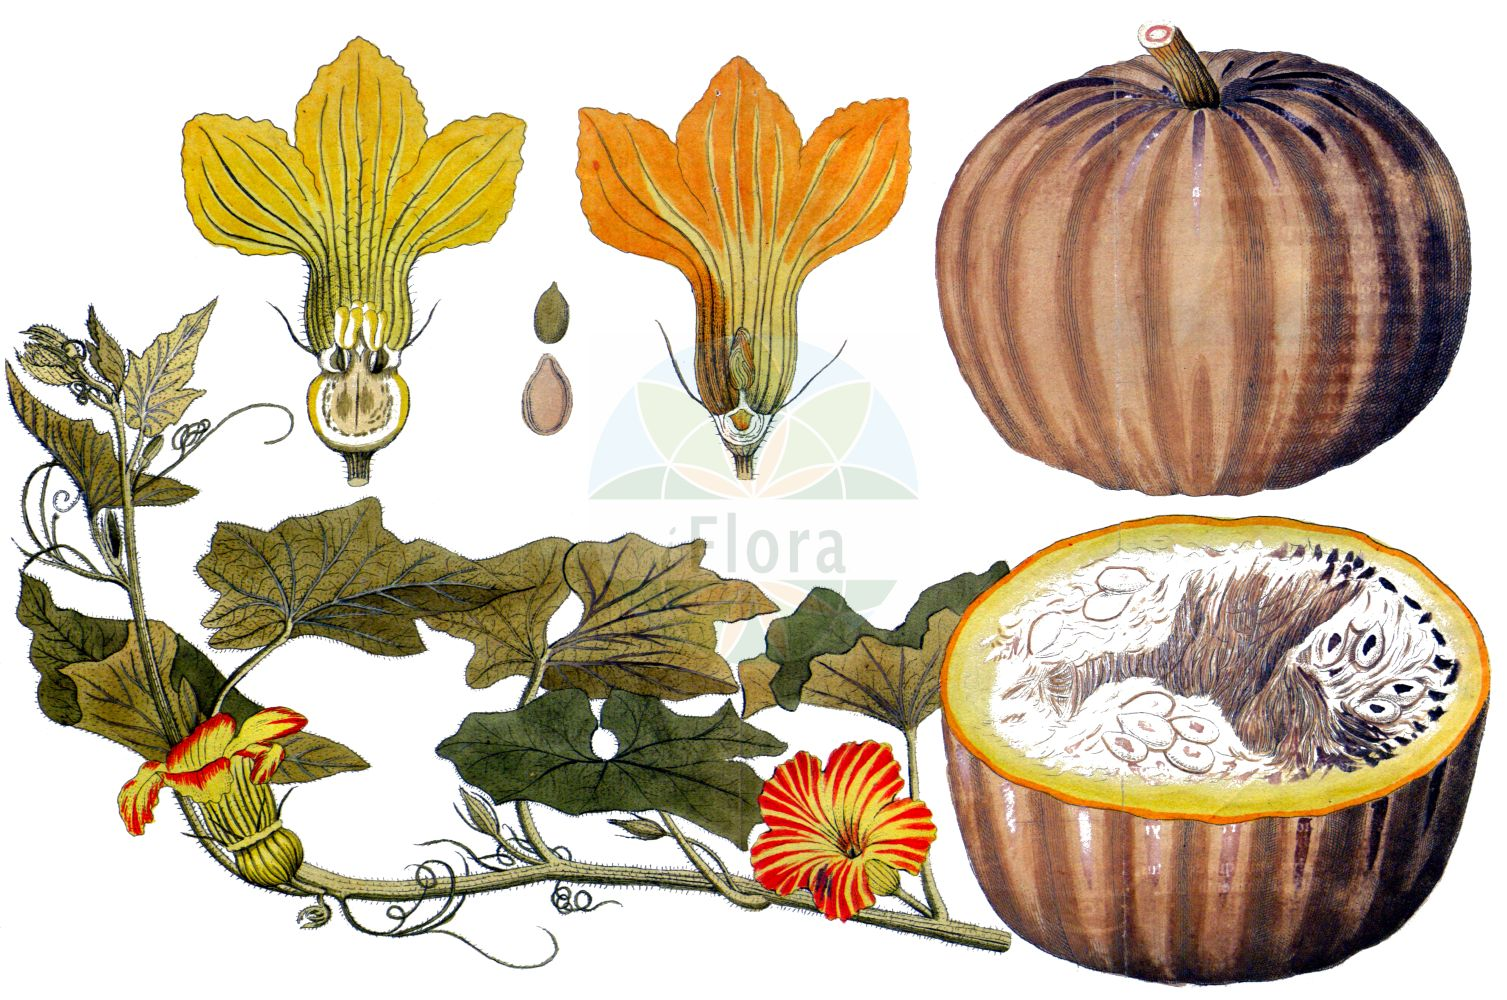 Historische Abbildung von Cucurbita pepo. Das Bild zeigt Blatt, Bluete, Frucht und Same. ---- Historical Drawing of Cucurbita pepo.The image is showing leaf, flower, fruit and seed.(Cucurbita pepo,Cucurbita aurantia,Cucurbita clodiensis,Cucurbita melopepo,Cucurbita oblonga,Cucurbita ovifera,Cucurbita pepo,Cucurbita verrucosa,Cucurbita,Cucurbitaceae,Kuerbisgewaechse,Cucurbit family,Blatt,Bluete,Frucht,Same,leaf,flower,fruit,seed,Vietz (1800-1822))